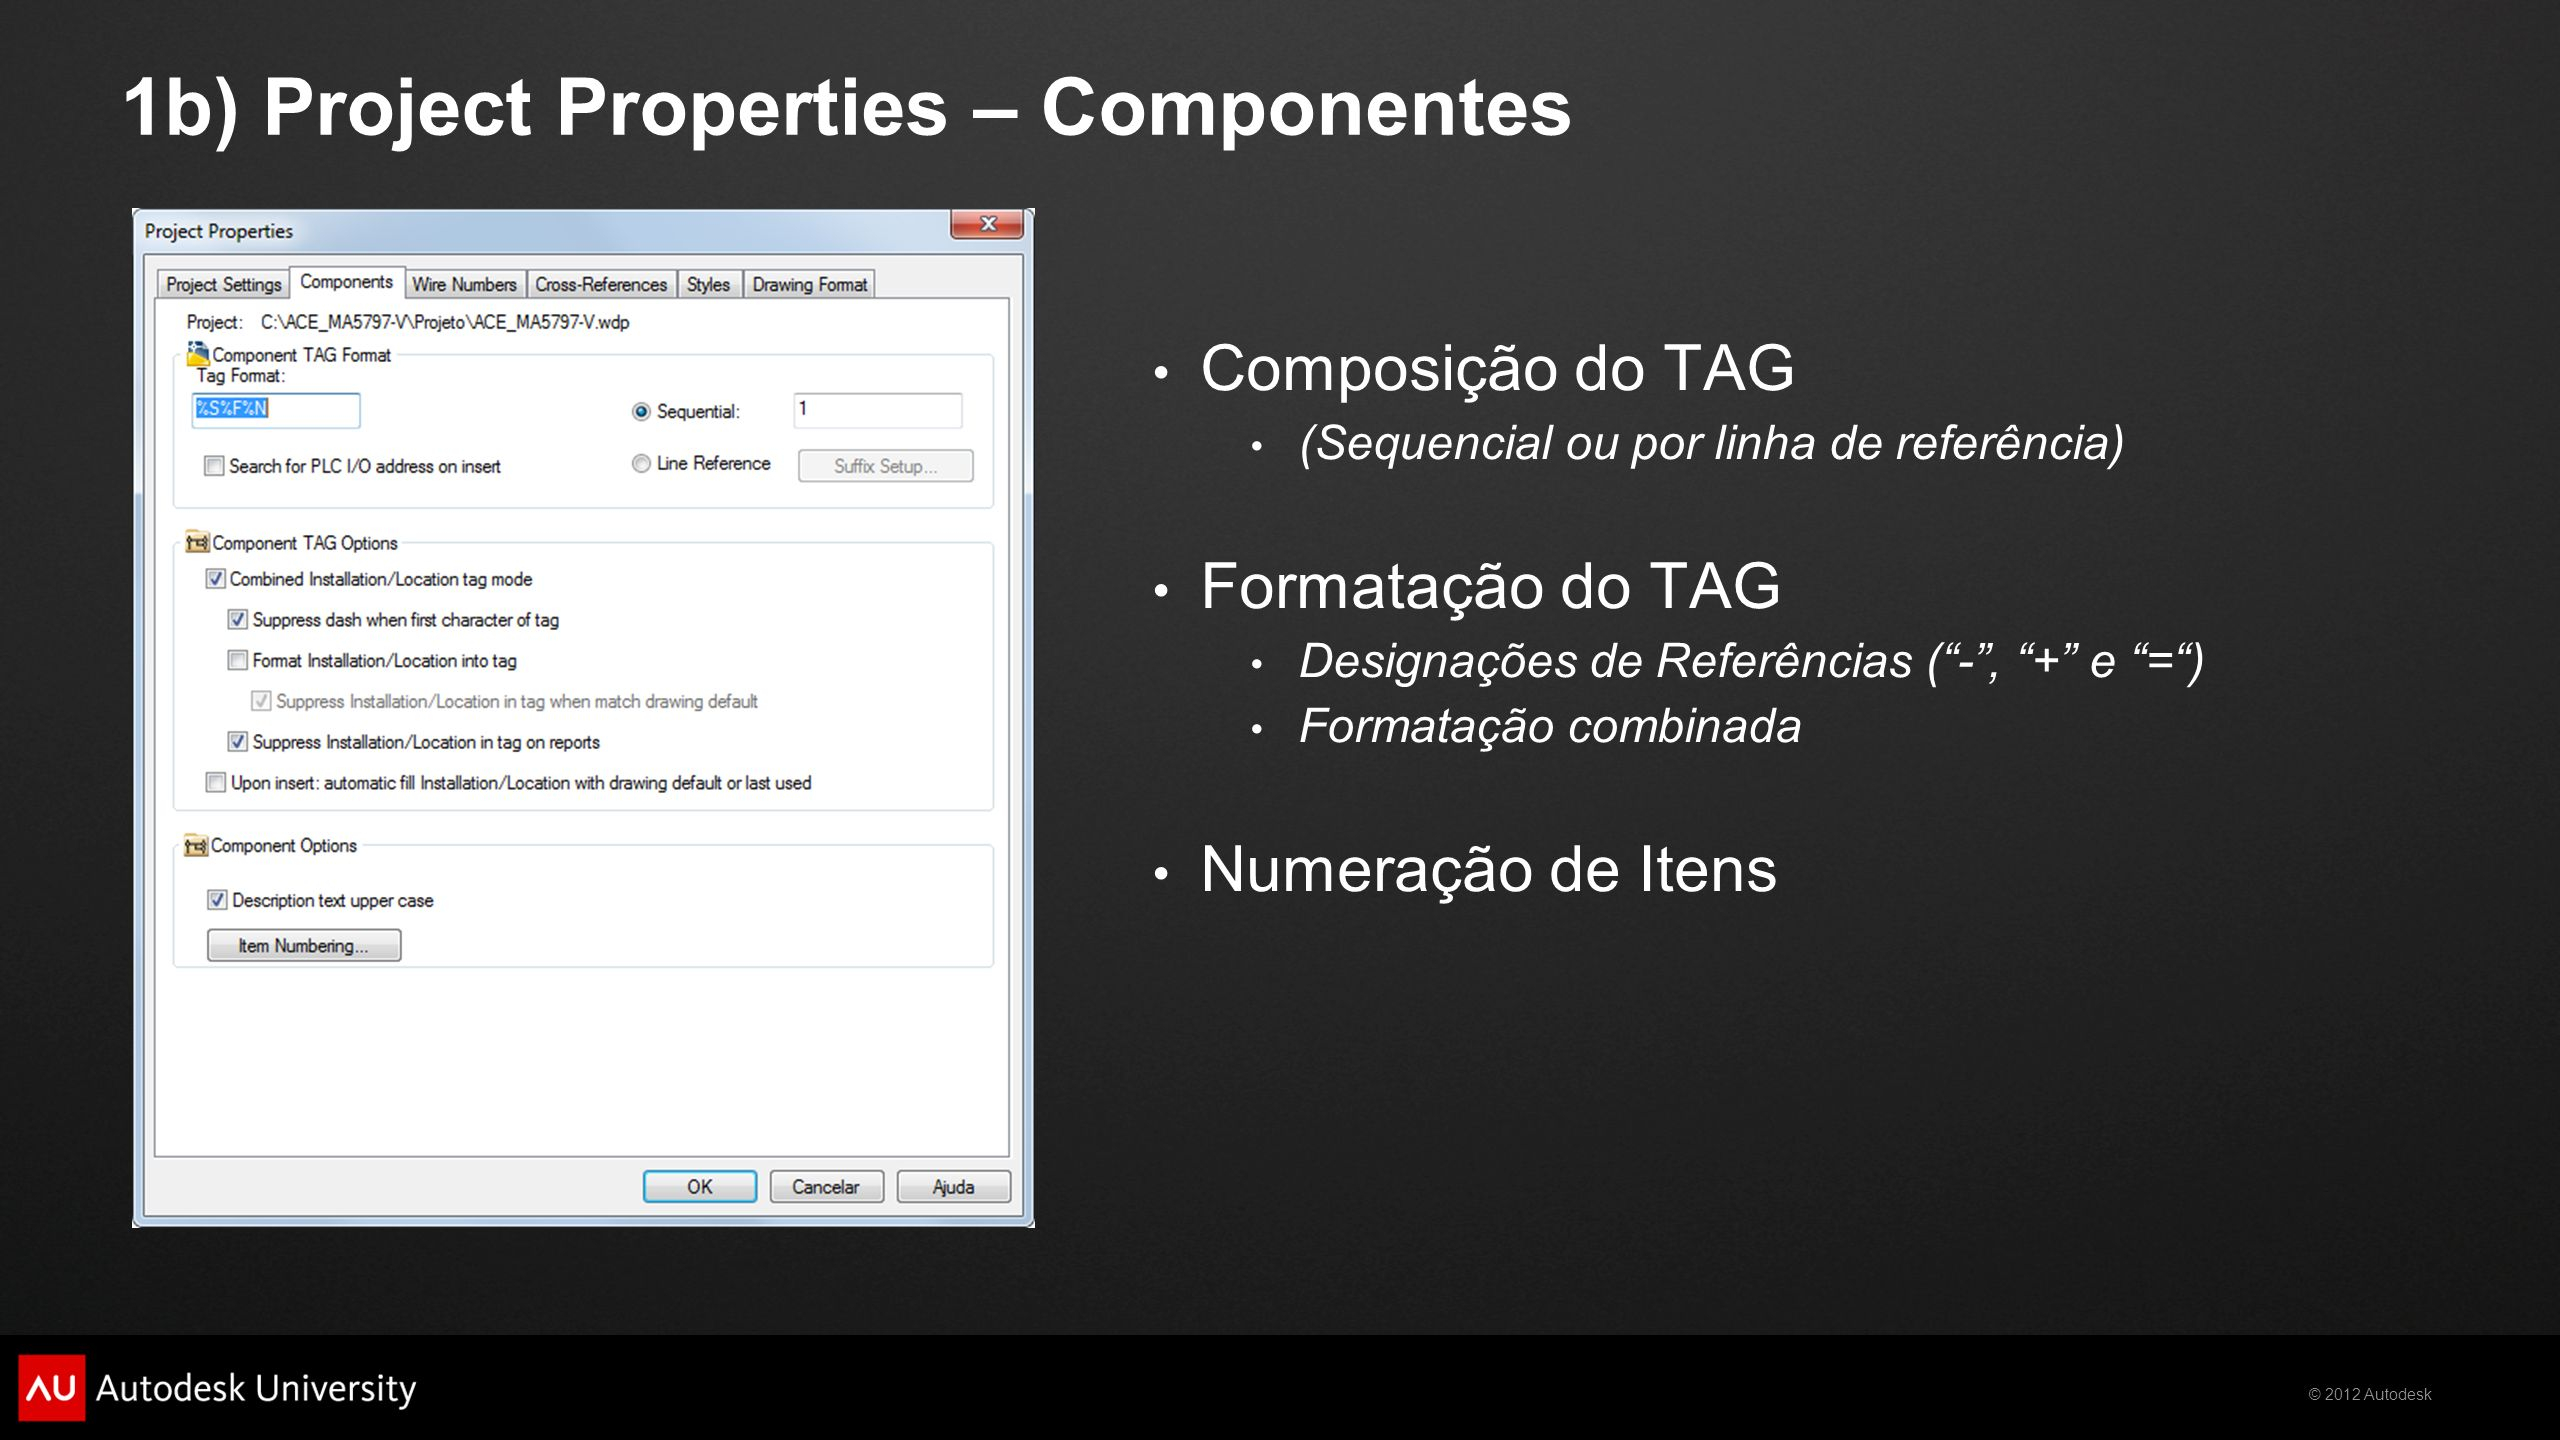 1b) Project Properties – Componentes